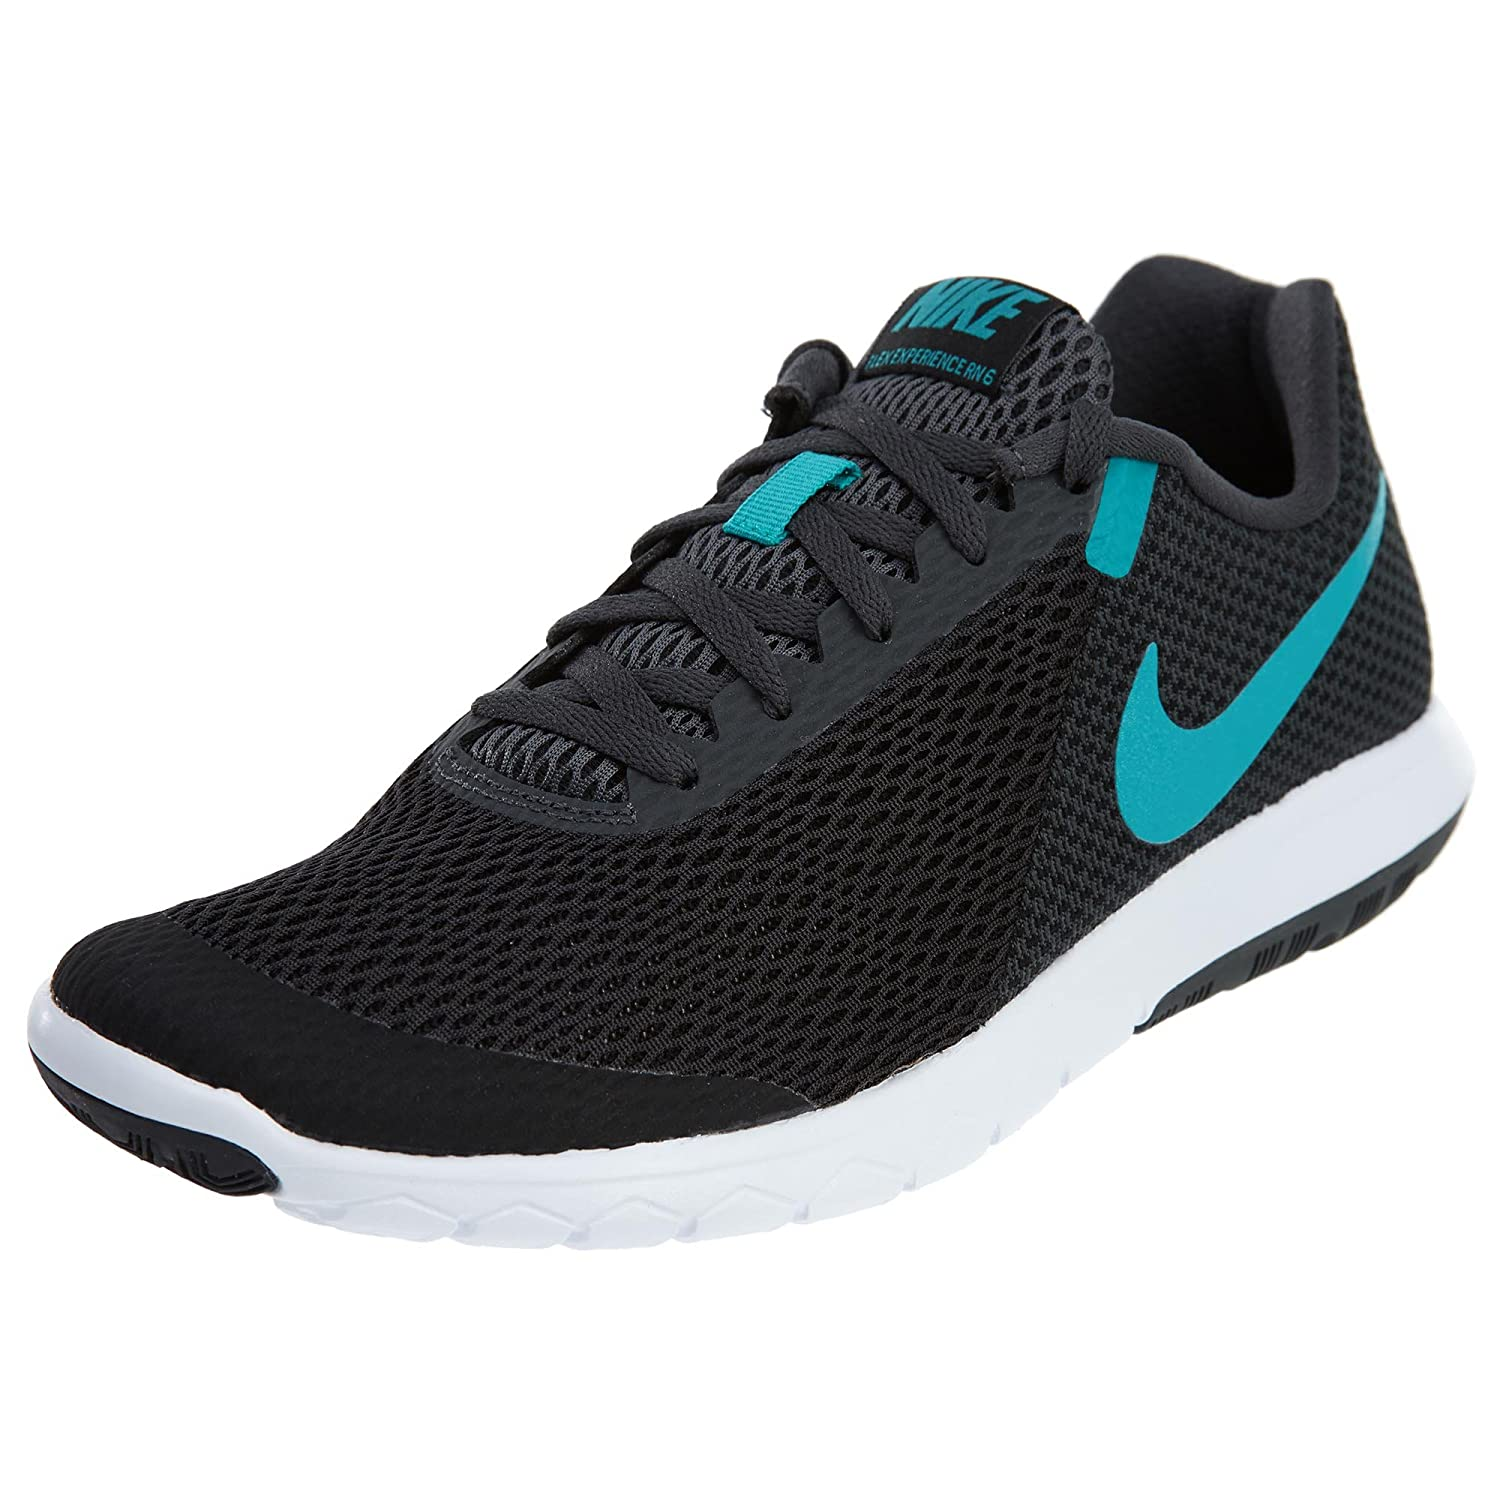 49884af6feaa Nike Flex Experience RN 6 Men s Running Shoes (10 D(M) US